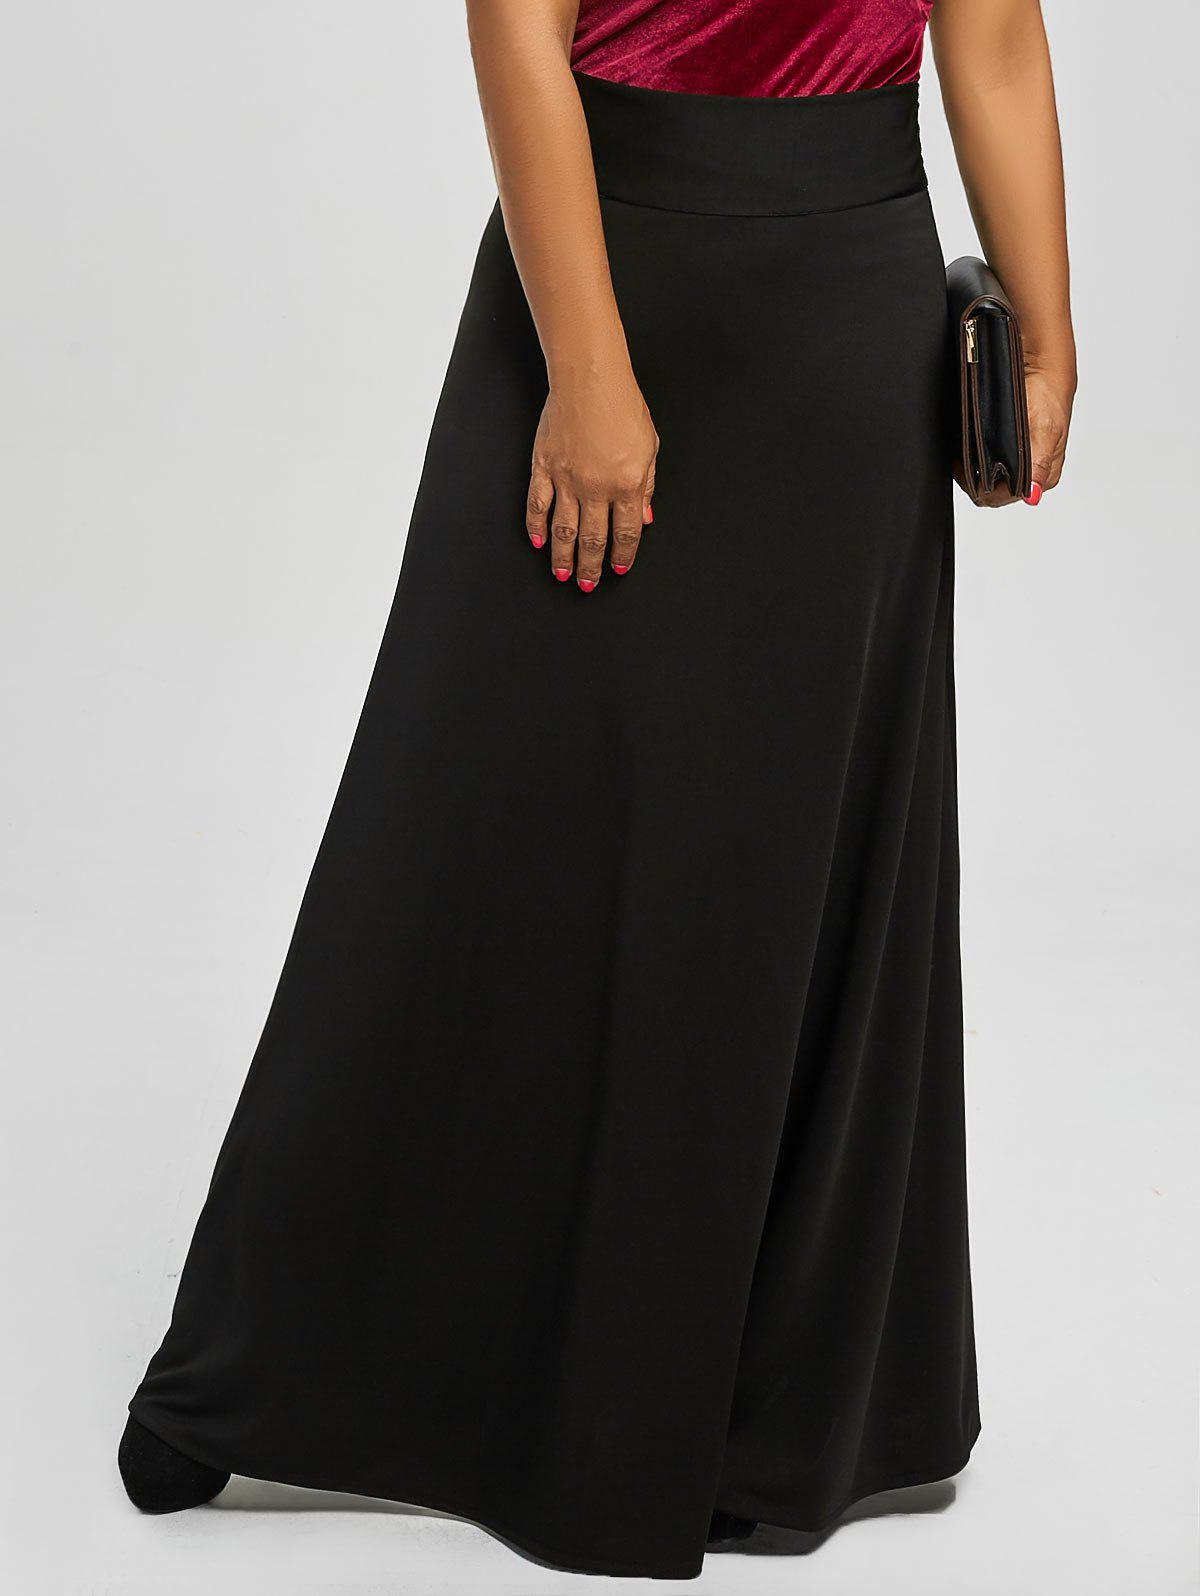 High Waist Plus Size Maxi SkirtWOMEN<br><br>Size: 5XL; Color: BLACK; Material: Cotton,Cotton Blends,Polyester; Length: Floor-Length; Silhouette: A-Line; Pattern Type: Solid; Season: Fall,Spring; Weight: 0.5500kg; Package Contents: 1 x Skirt;